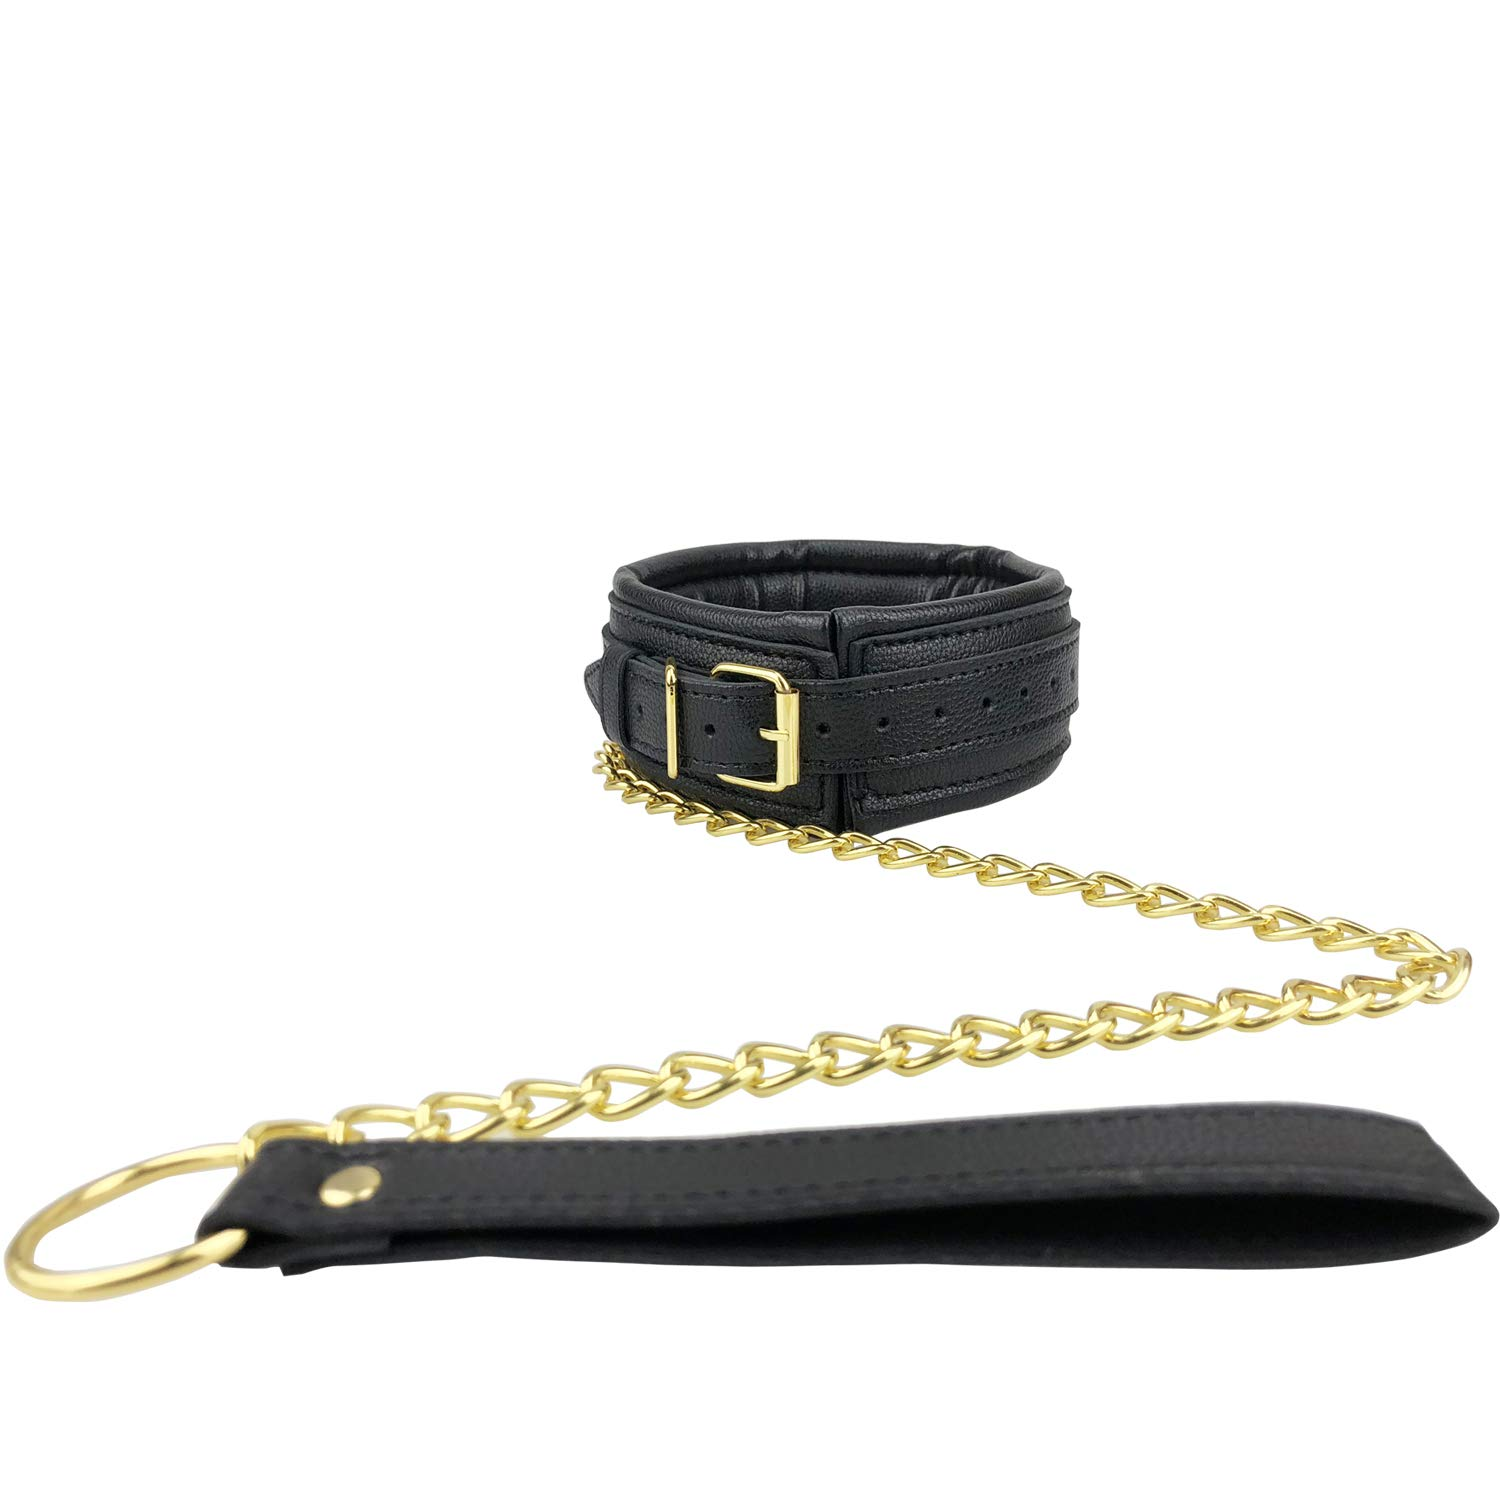 Soft Touch Choker Collars PU Leather Necklace with Gold Chain Leash for Women Men